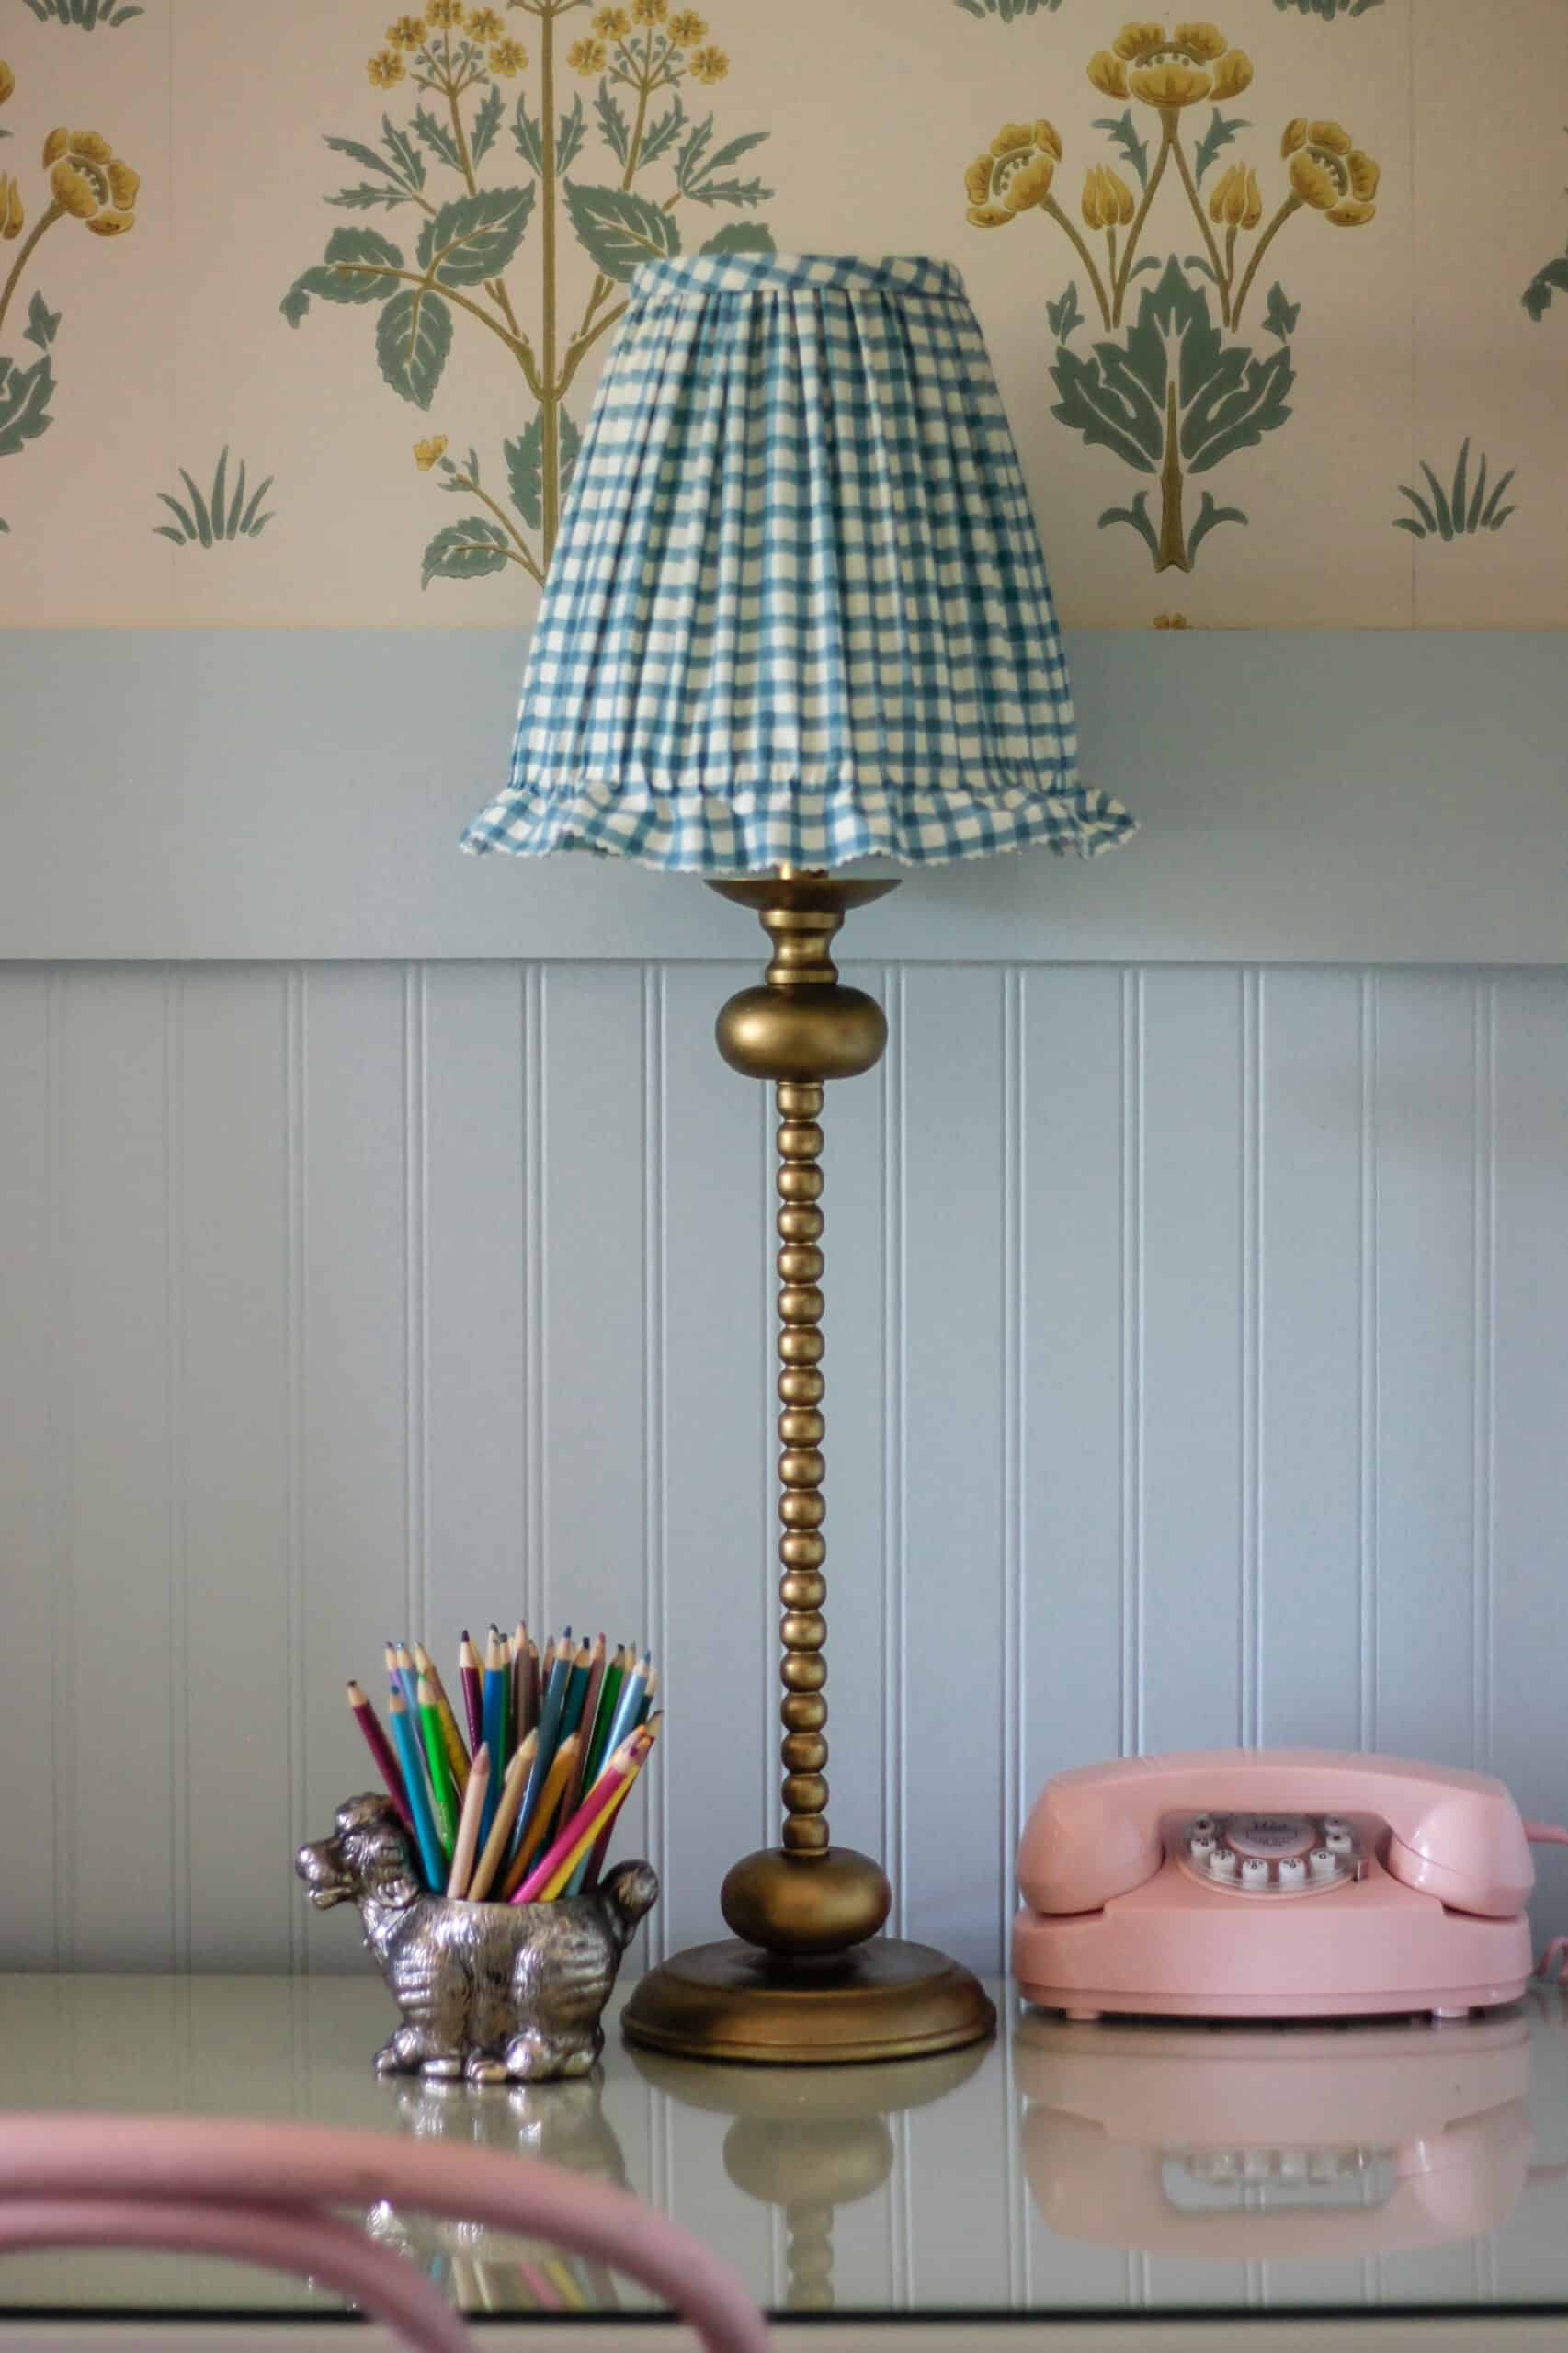 brass desk lamp with blue gingham shade on desk with pink phone